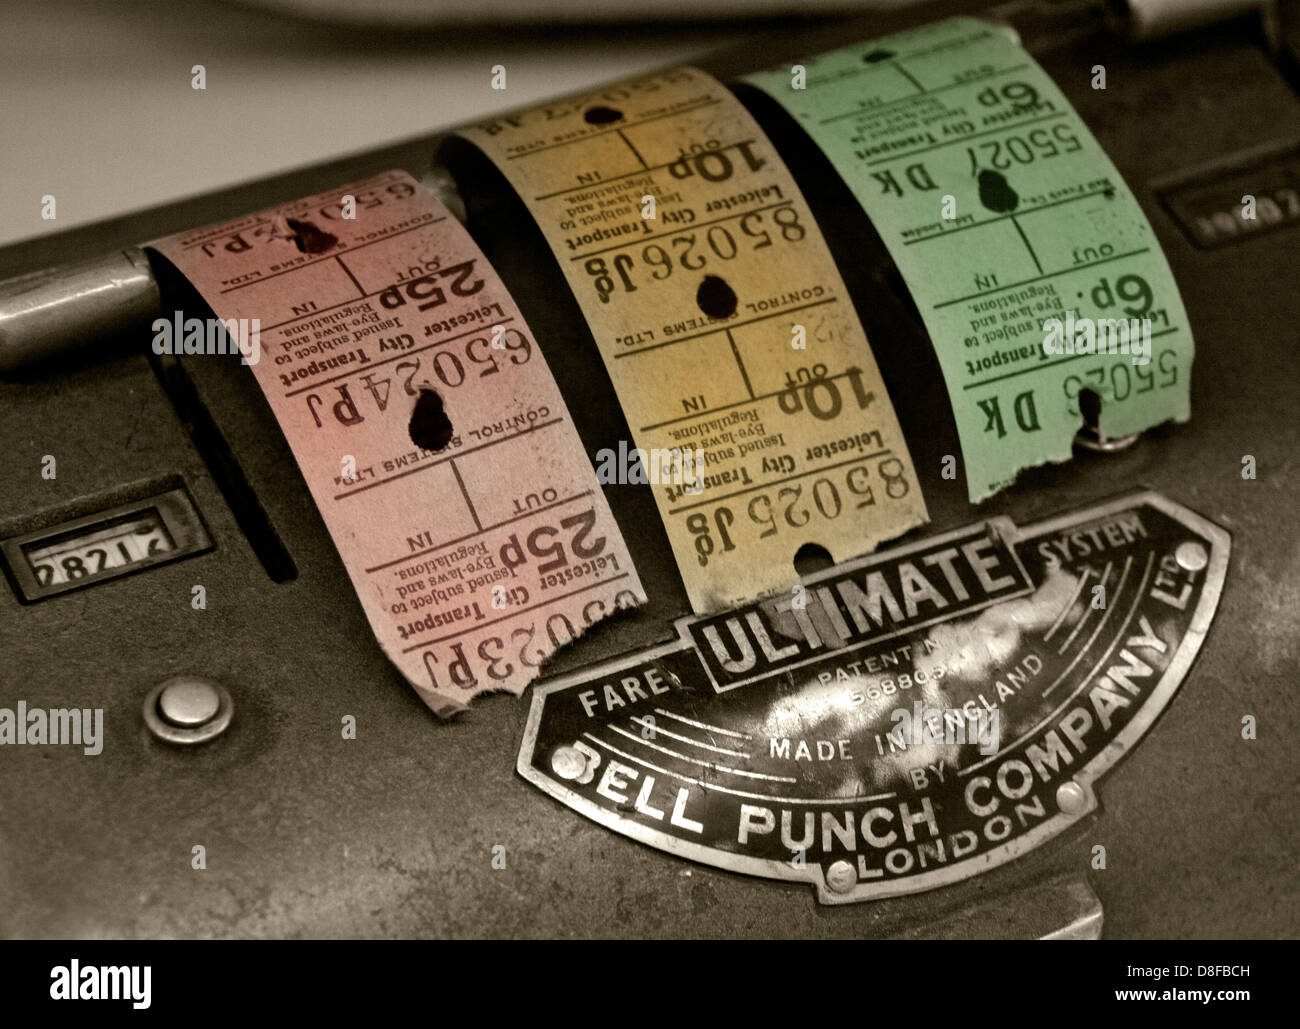 Paper,omnibus,red,orange,green,25p,10p,6p,pence,25,10,6,ticketmachine,company,ltd,limited,london,selective,colour,color,British,public,transport,English,England,conductor,conductors,vending,passenger,passenger,tram,tramway,old,fashioned,clippy,stop,validity,period,mechanical,ticketing,Gotonysmith stops,Buy Pictures of,Buy Images Of